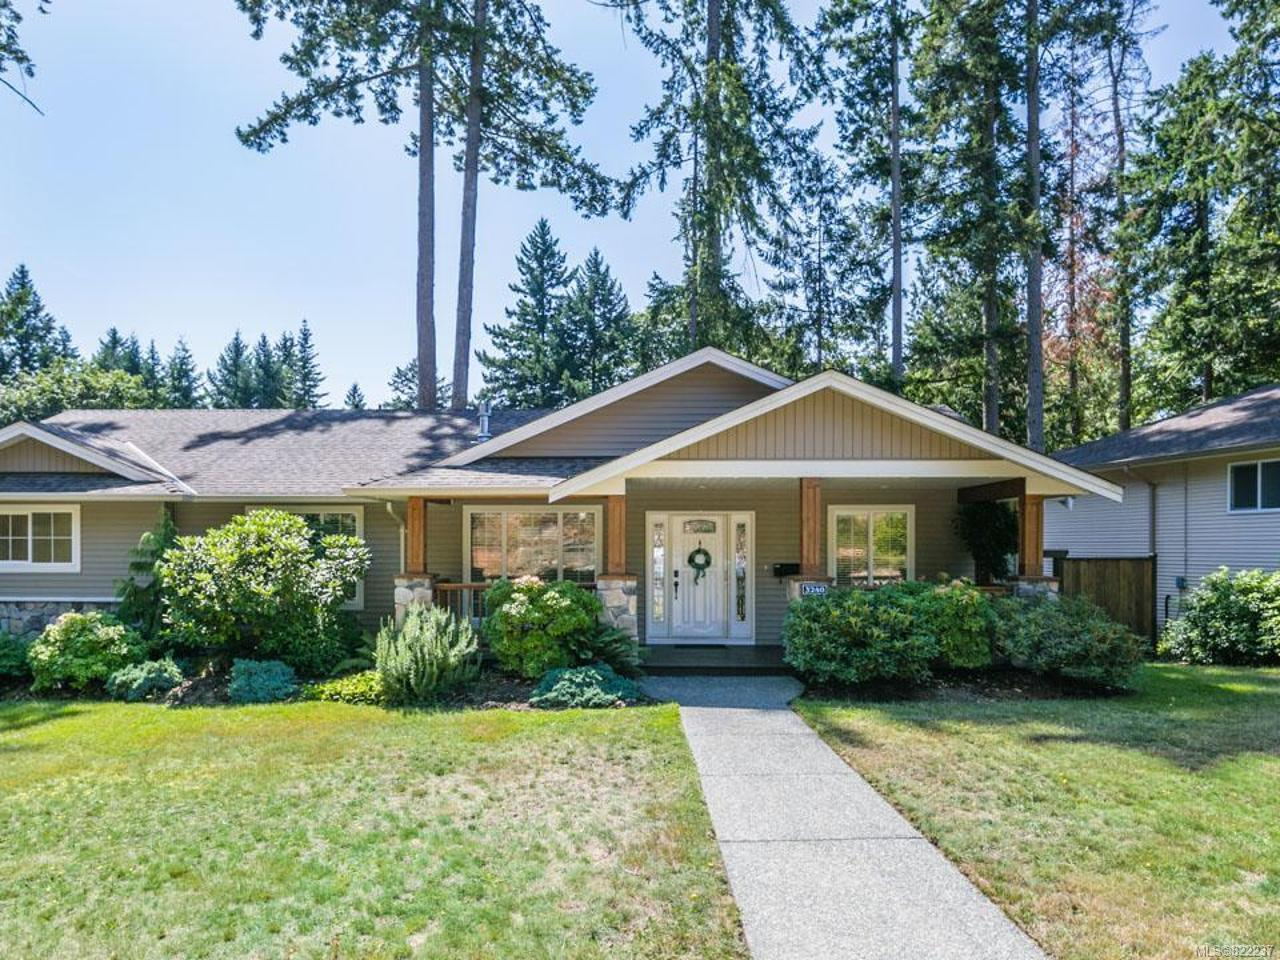 FEATURED LISTING: 3240 Granite Park Rd NANAIMO